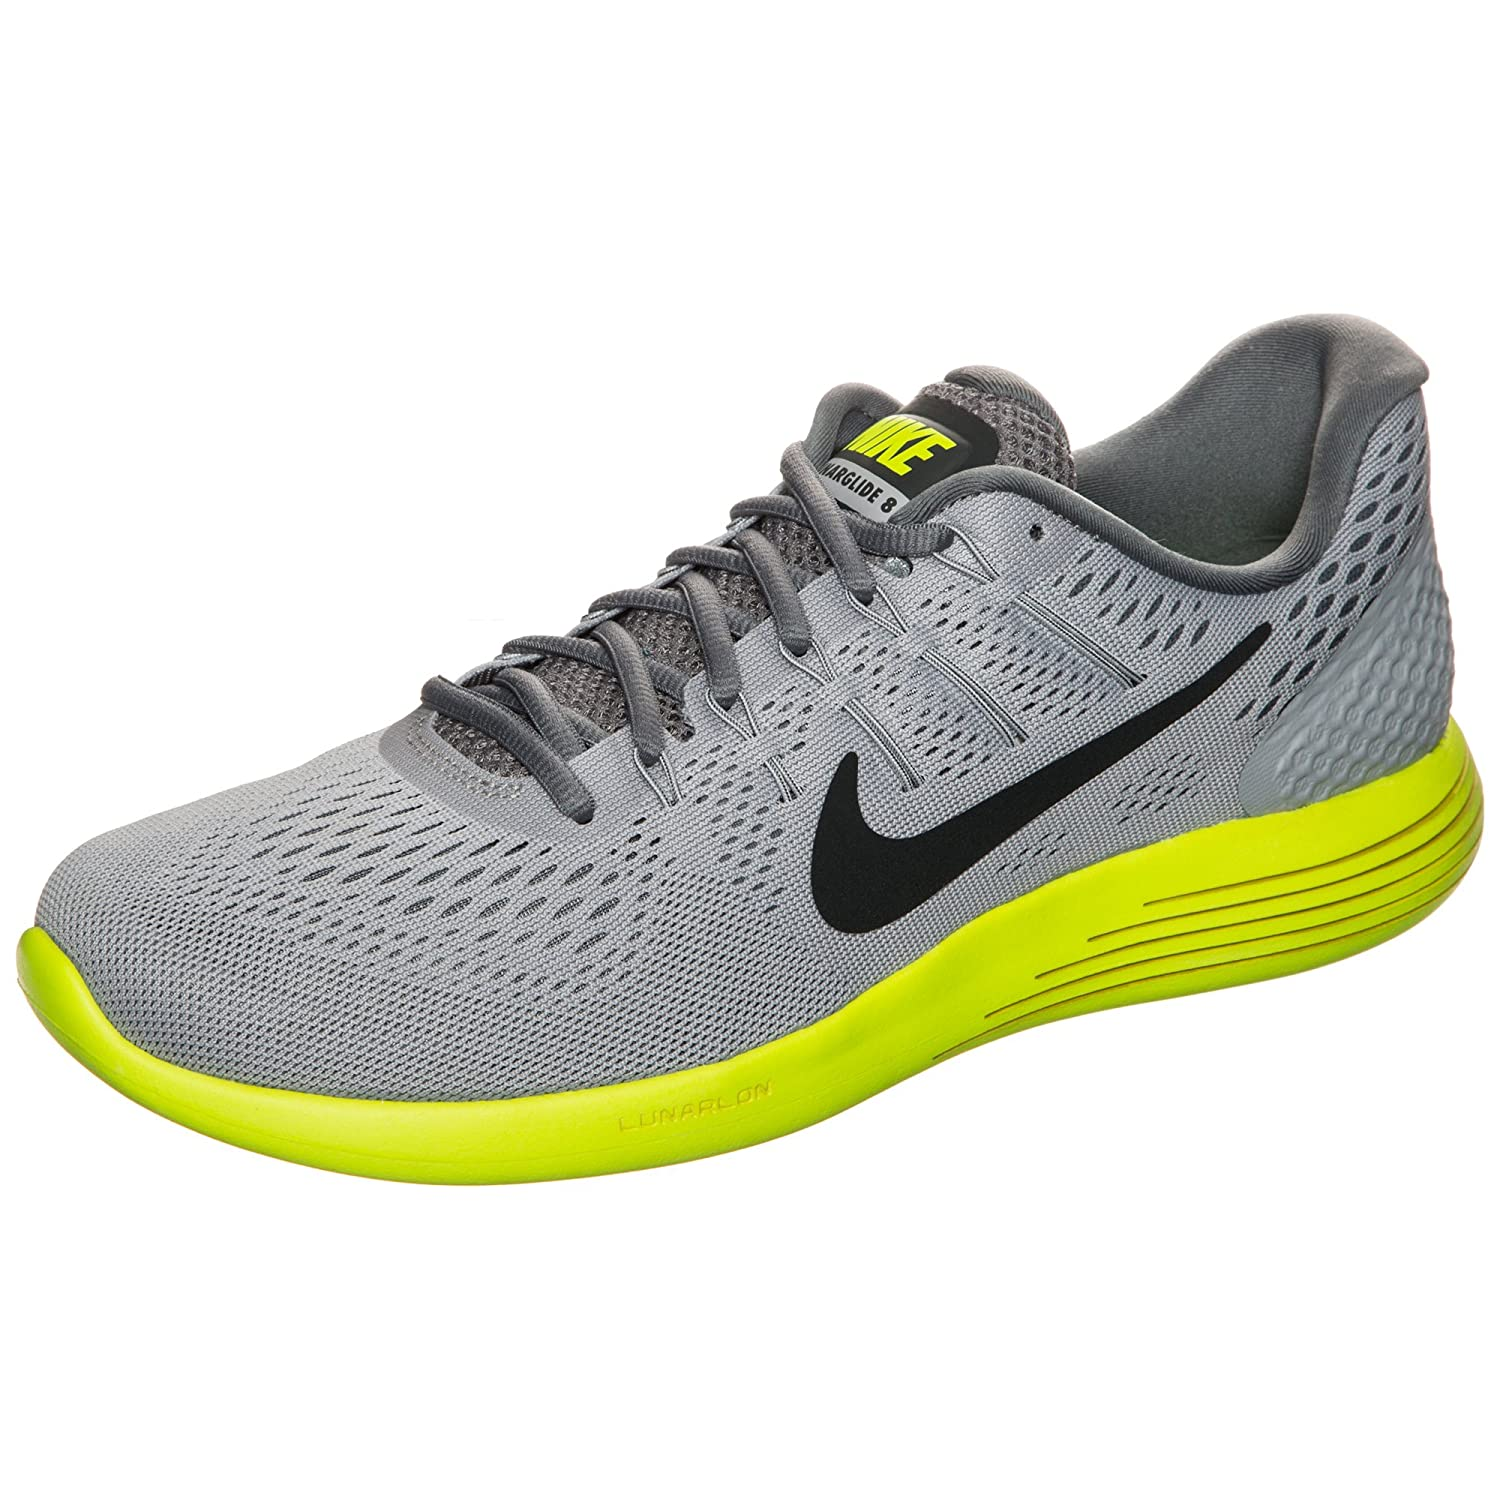 Nike Mens Lunarglide 8, Black / White - Anthracite B01JZYN4PE 12.5 D(M) US|Grey/Anthracite/Volt/Cool Grey